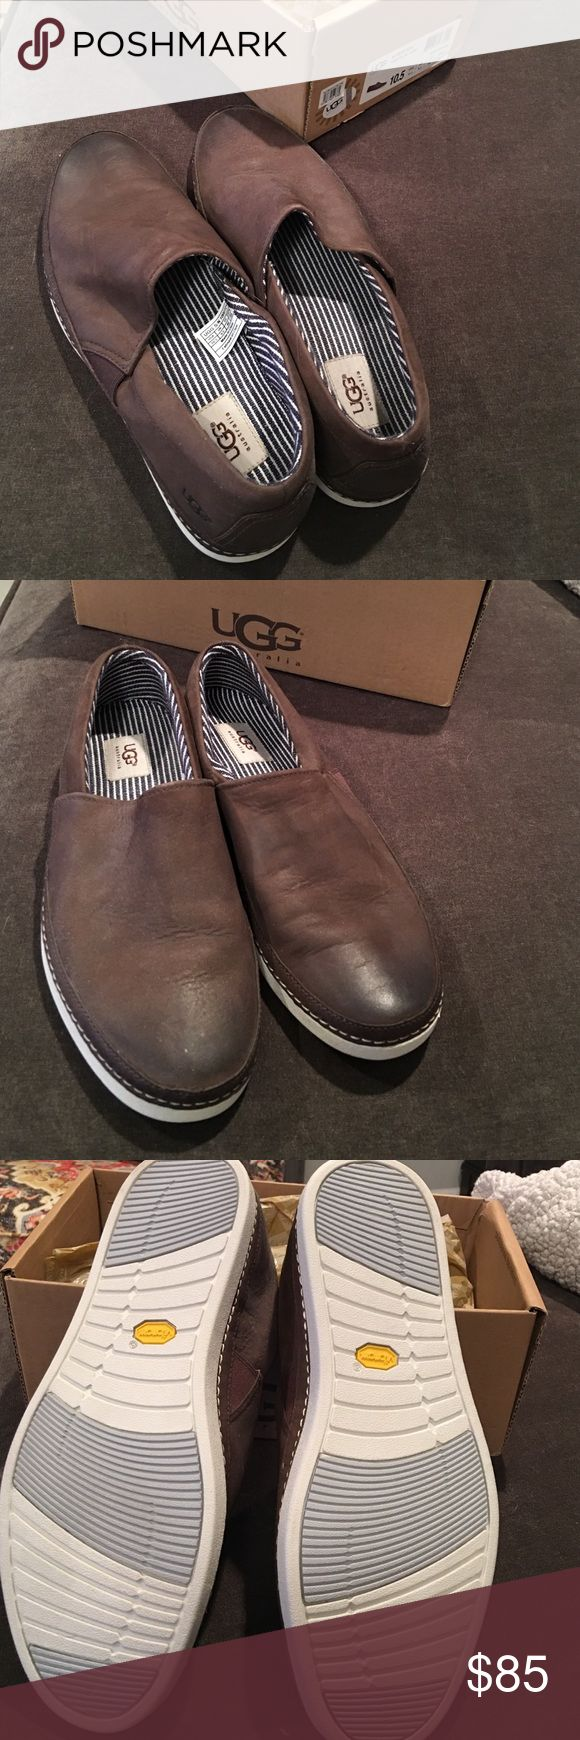 Men's Ugg Shoes Brand new never been worn. Only missing the top of the box. Got them for my dad but he never wore them. UGG Shoes Loafers & Slip-Ons